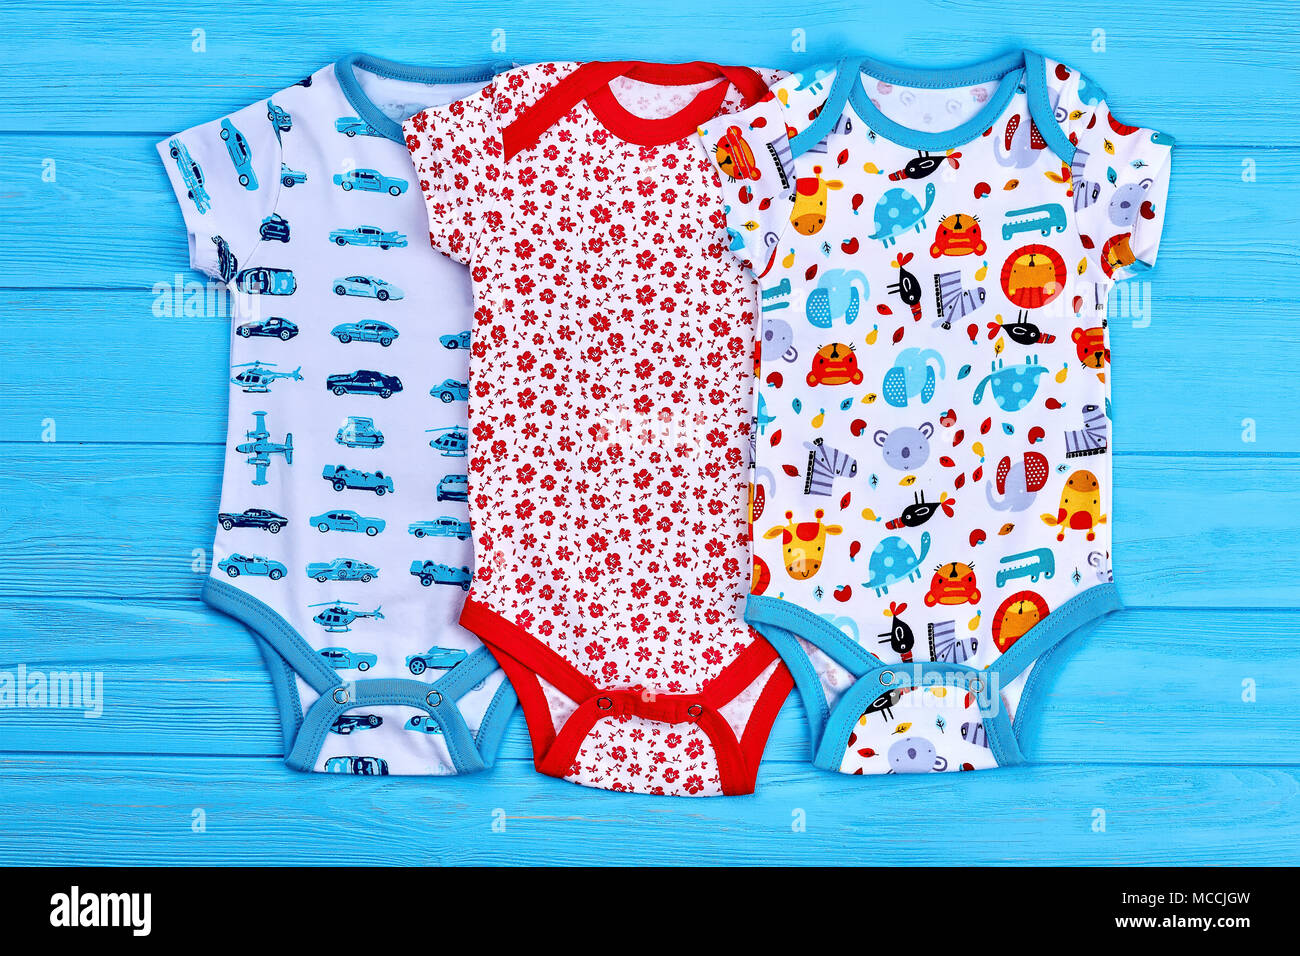 35c83b379 Set of beautiful bodysuits for newborn. Patterned cotton rompers for infant  baby, blue wooden background. Shop organic brand clothing for infant baby.